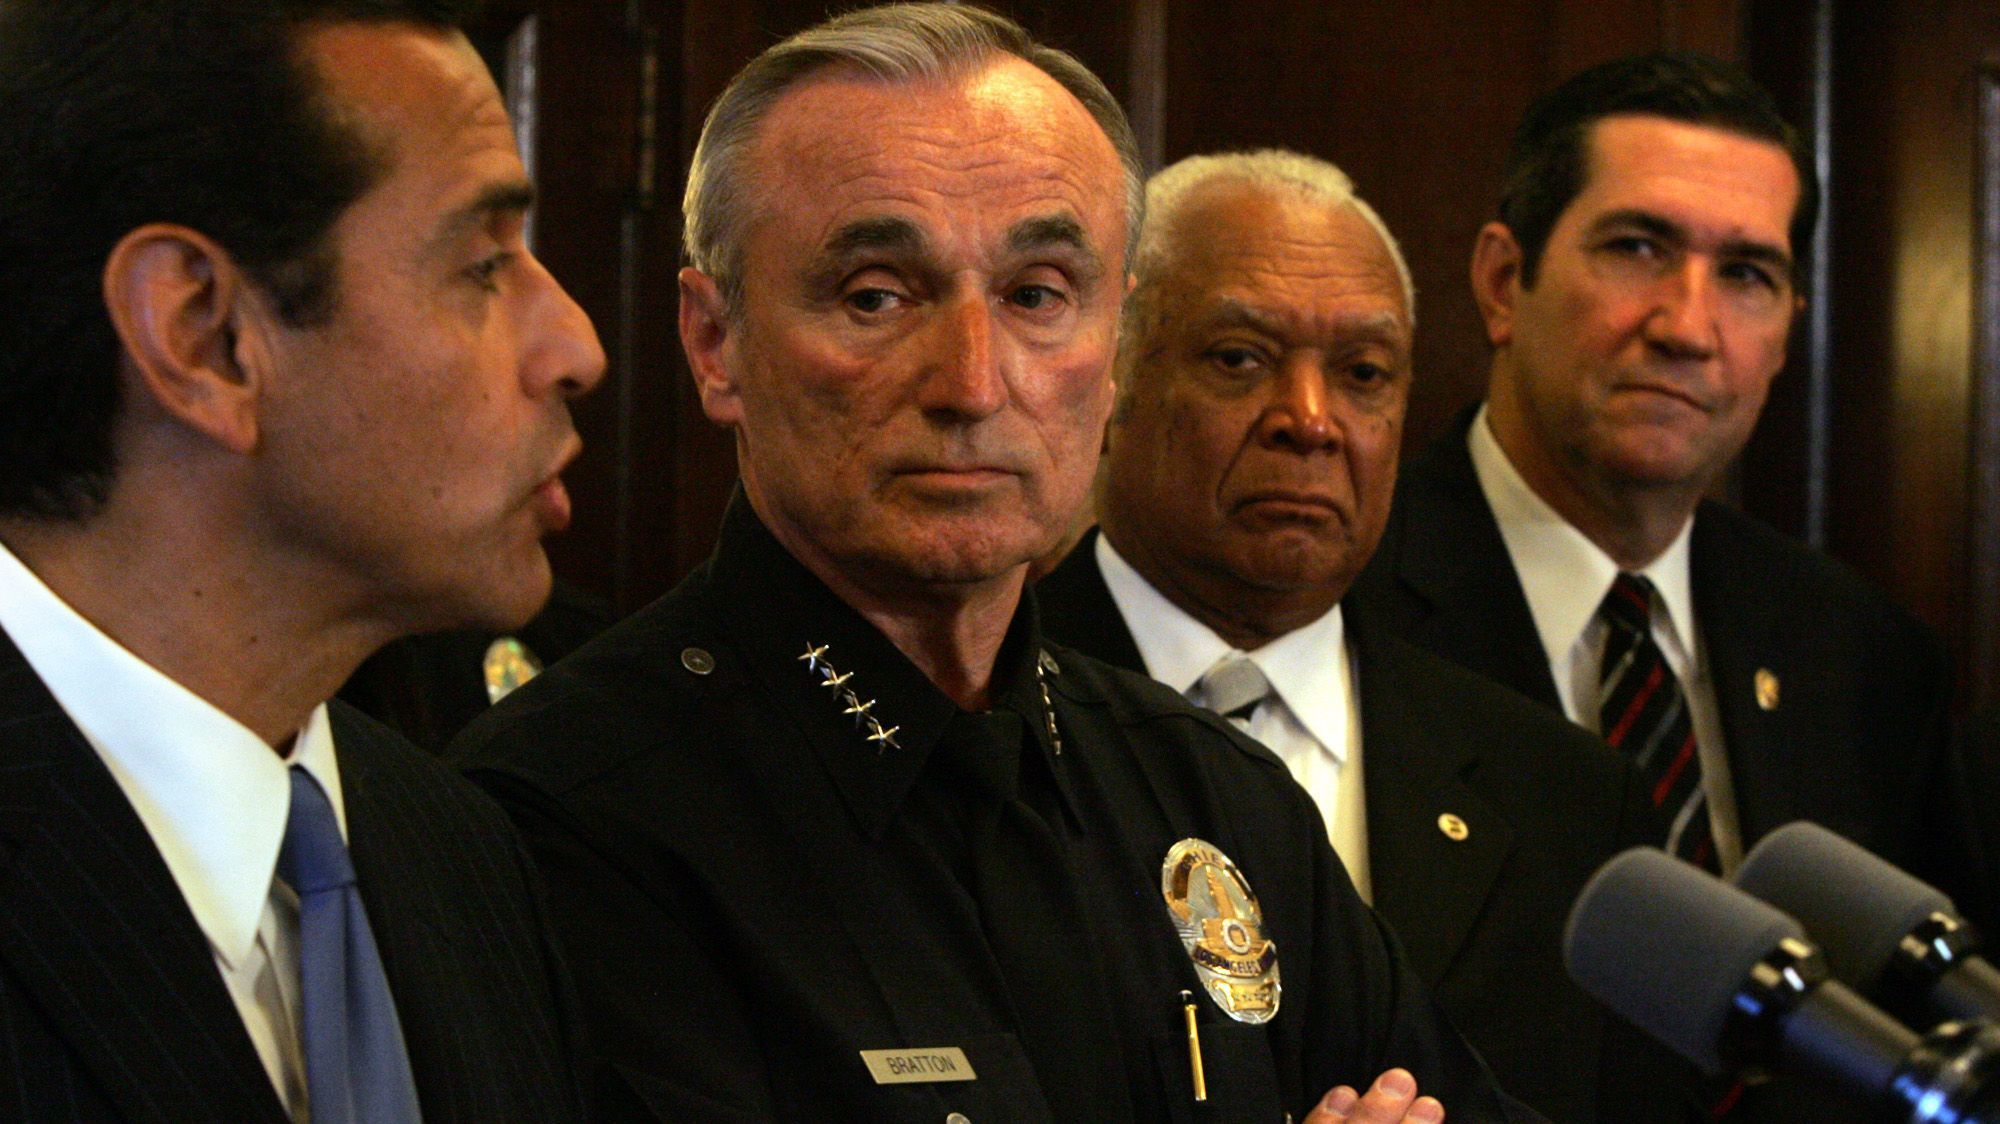 Police Chief William J. Bratton looks at Mayor Antonio Villaraigosa during a 2007 news conference at City Hall.